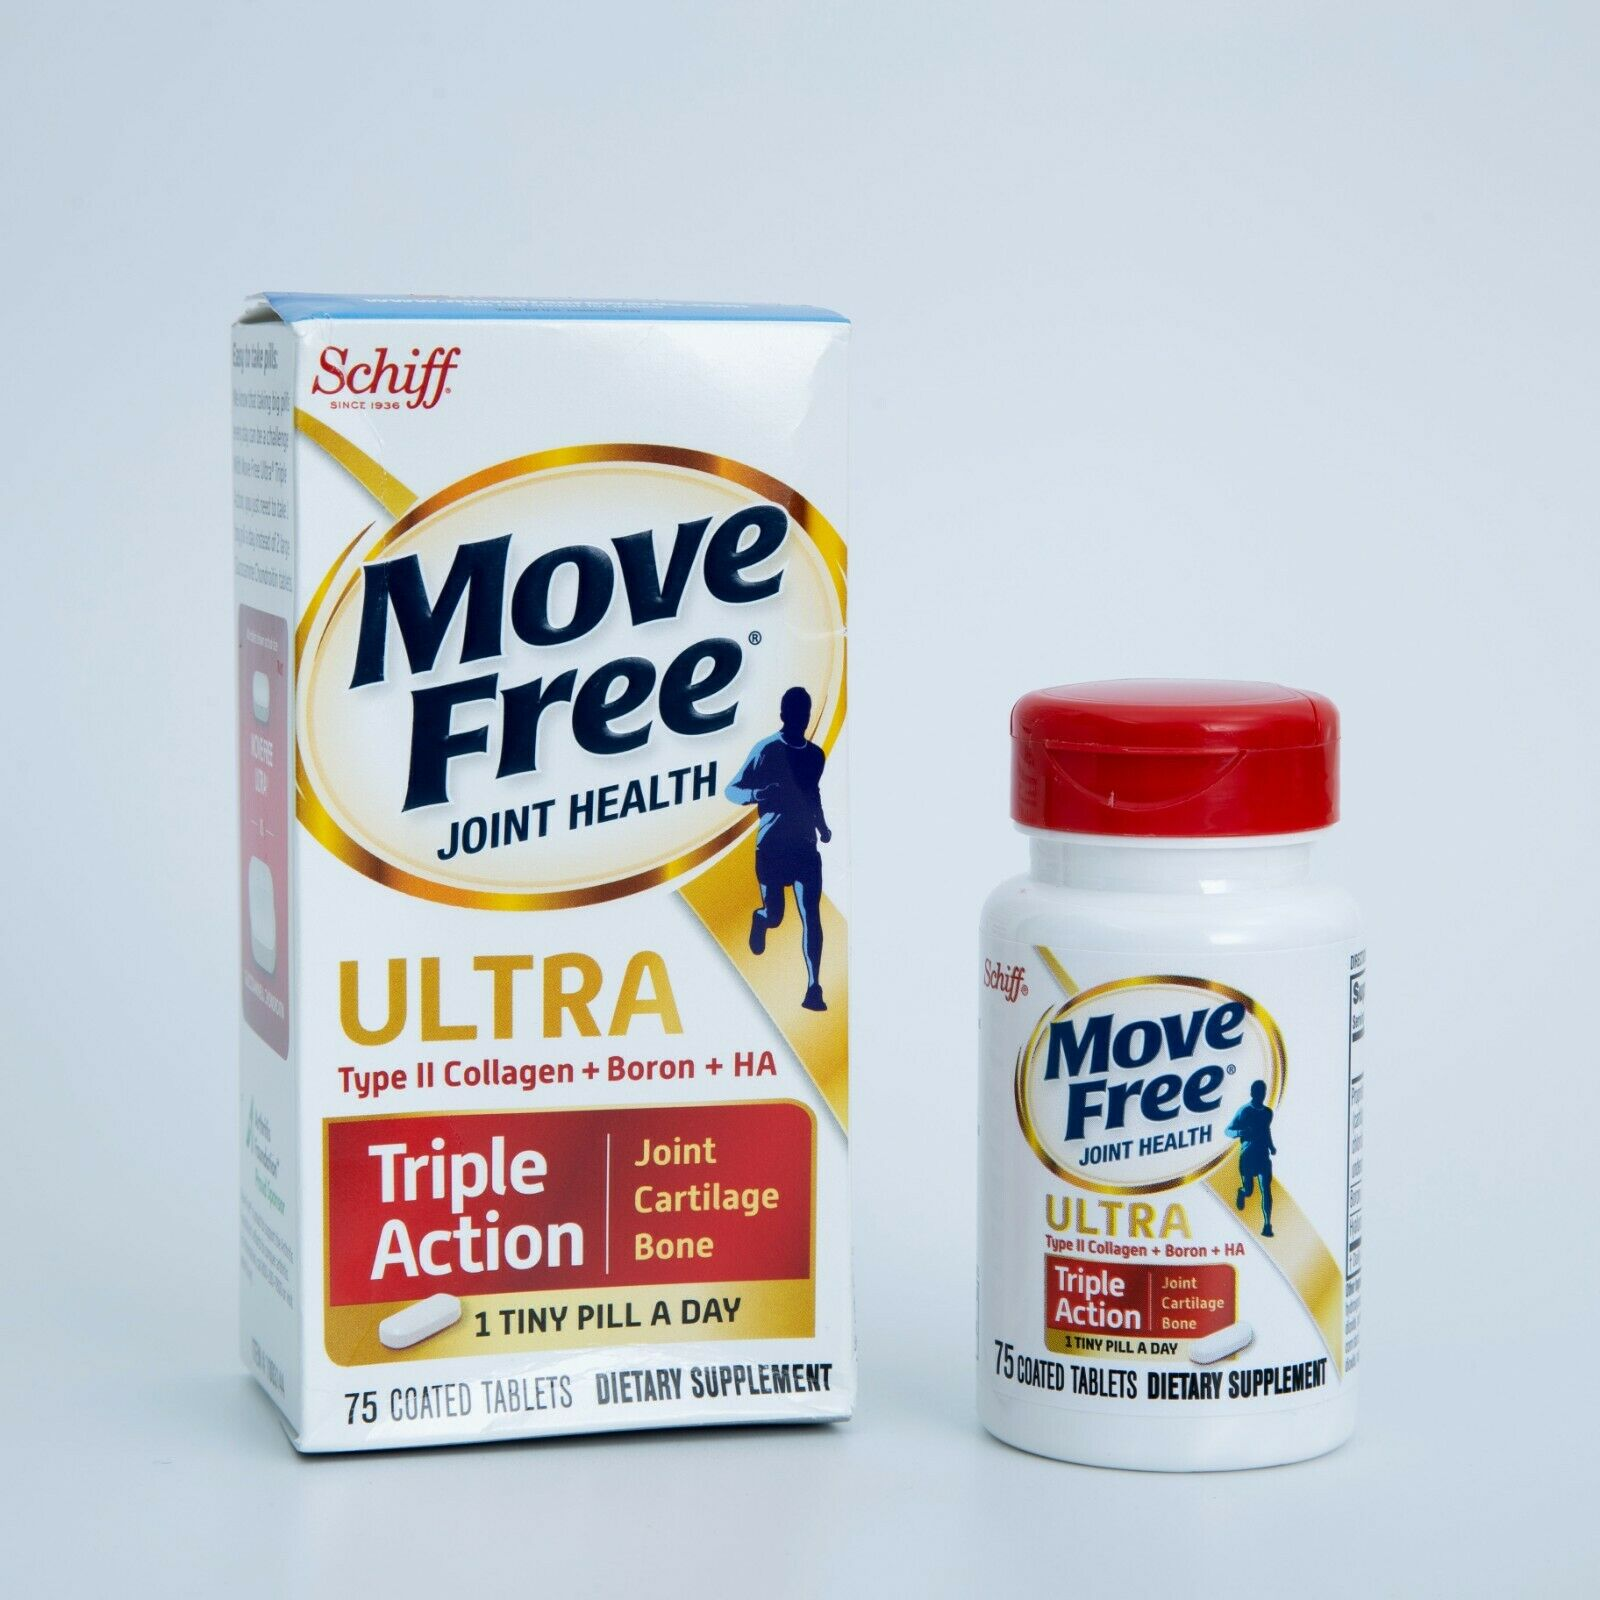 Schiff Move Free Ultra Triple Action 75 Table Exp:04/2023 Or Better